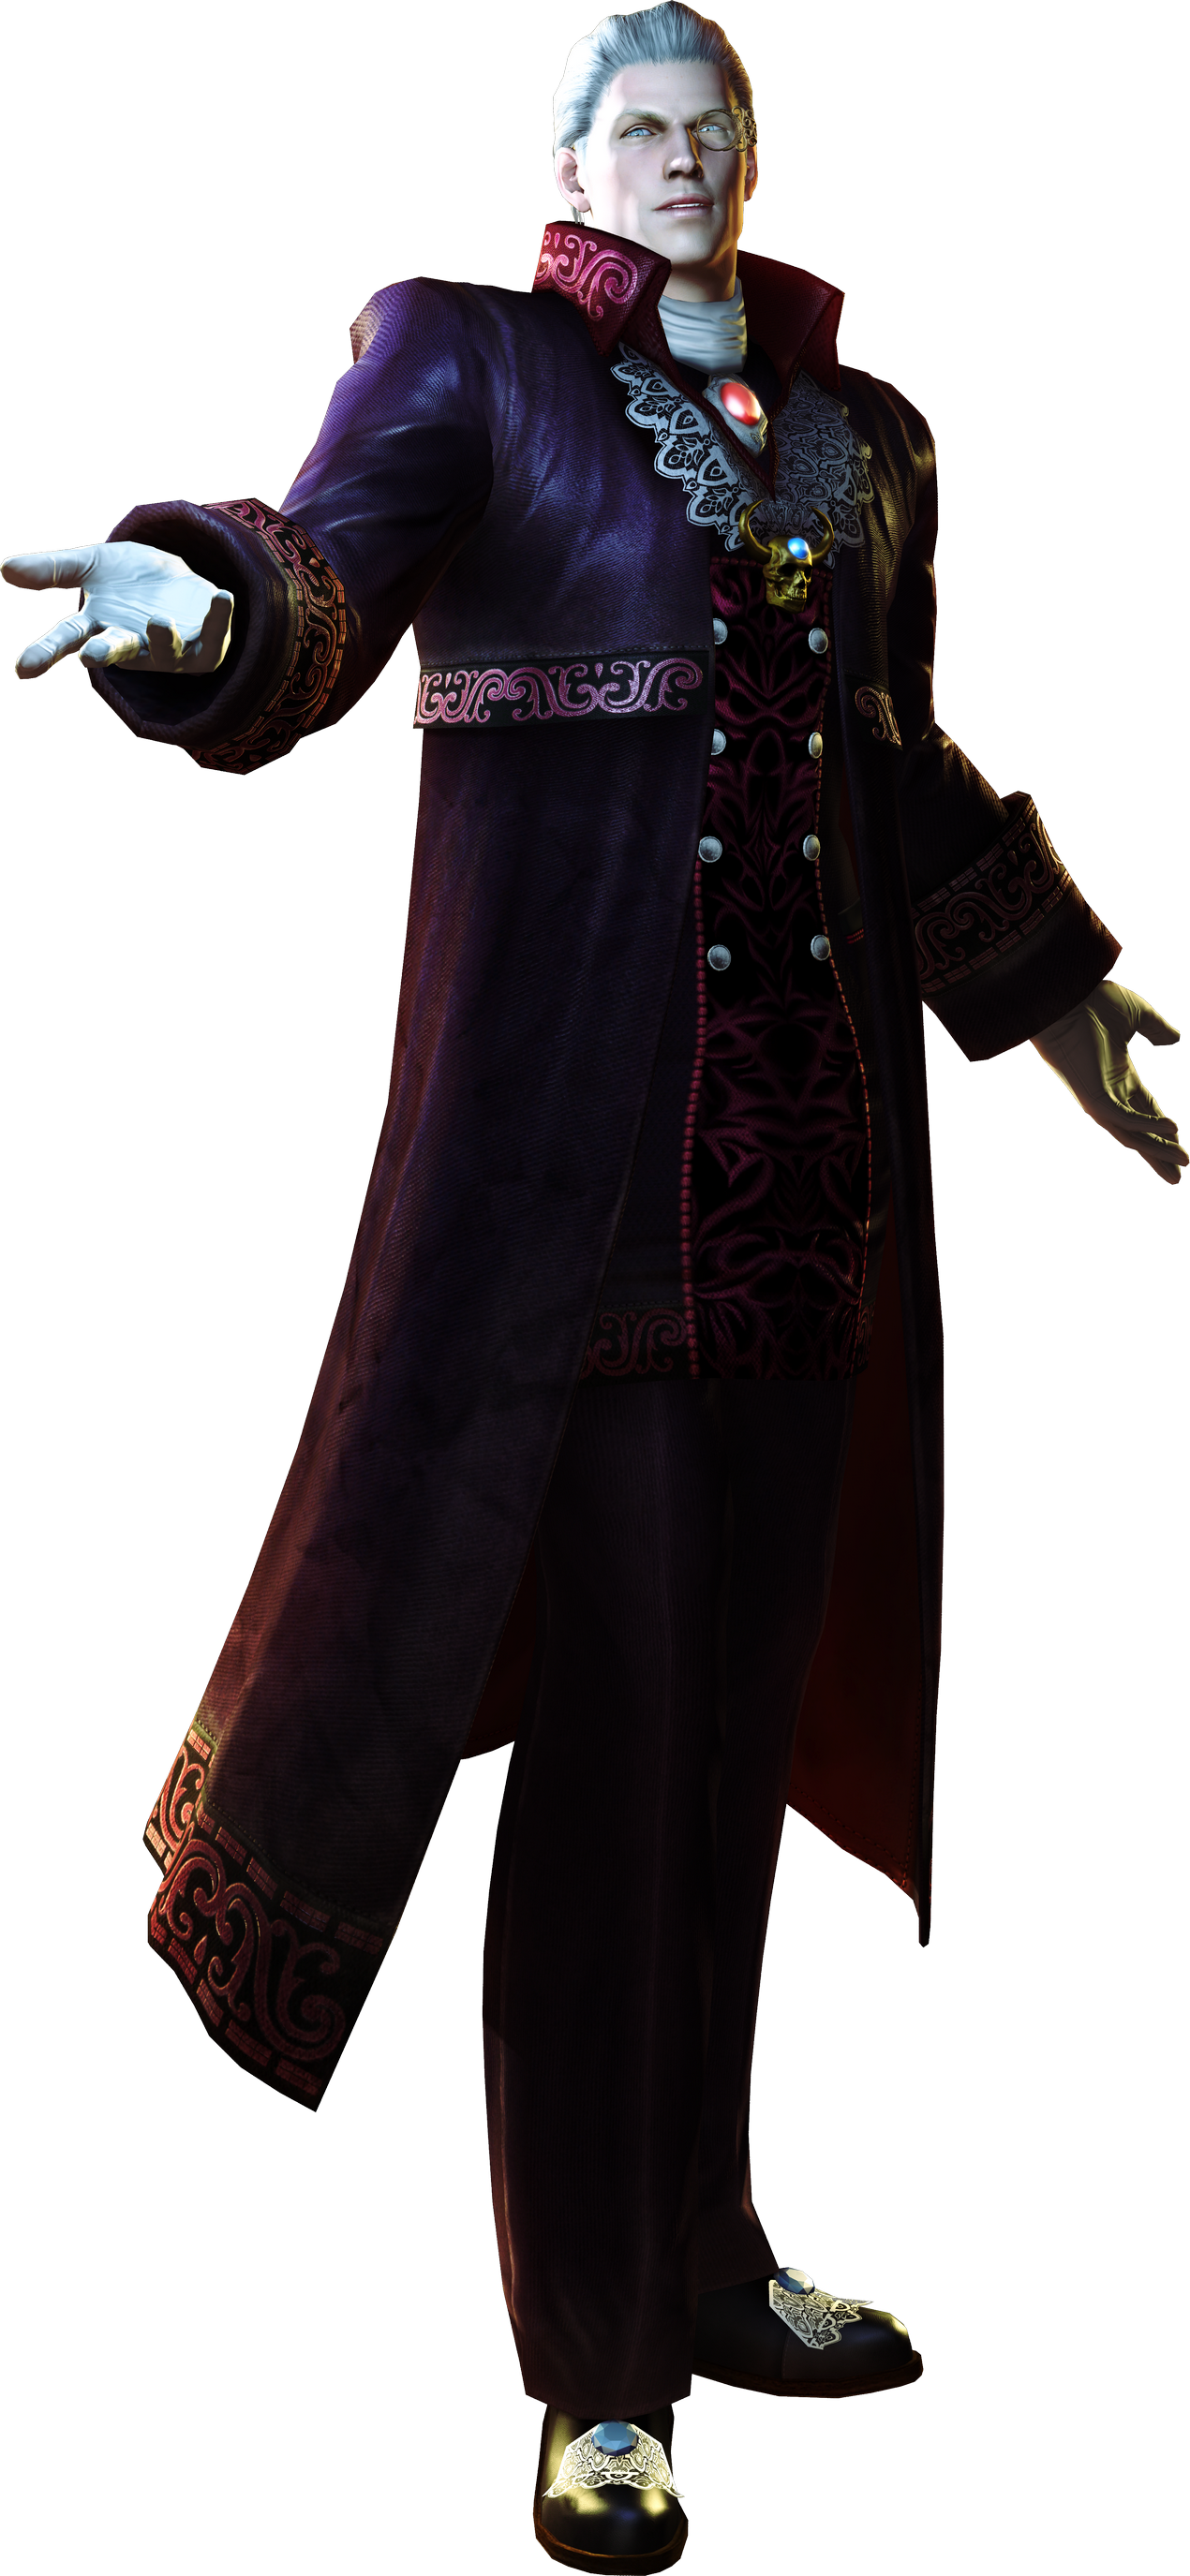 Sparda (Devil May Cry)